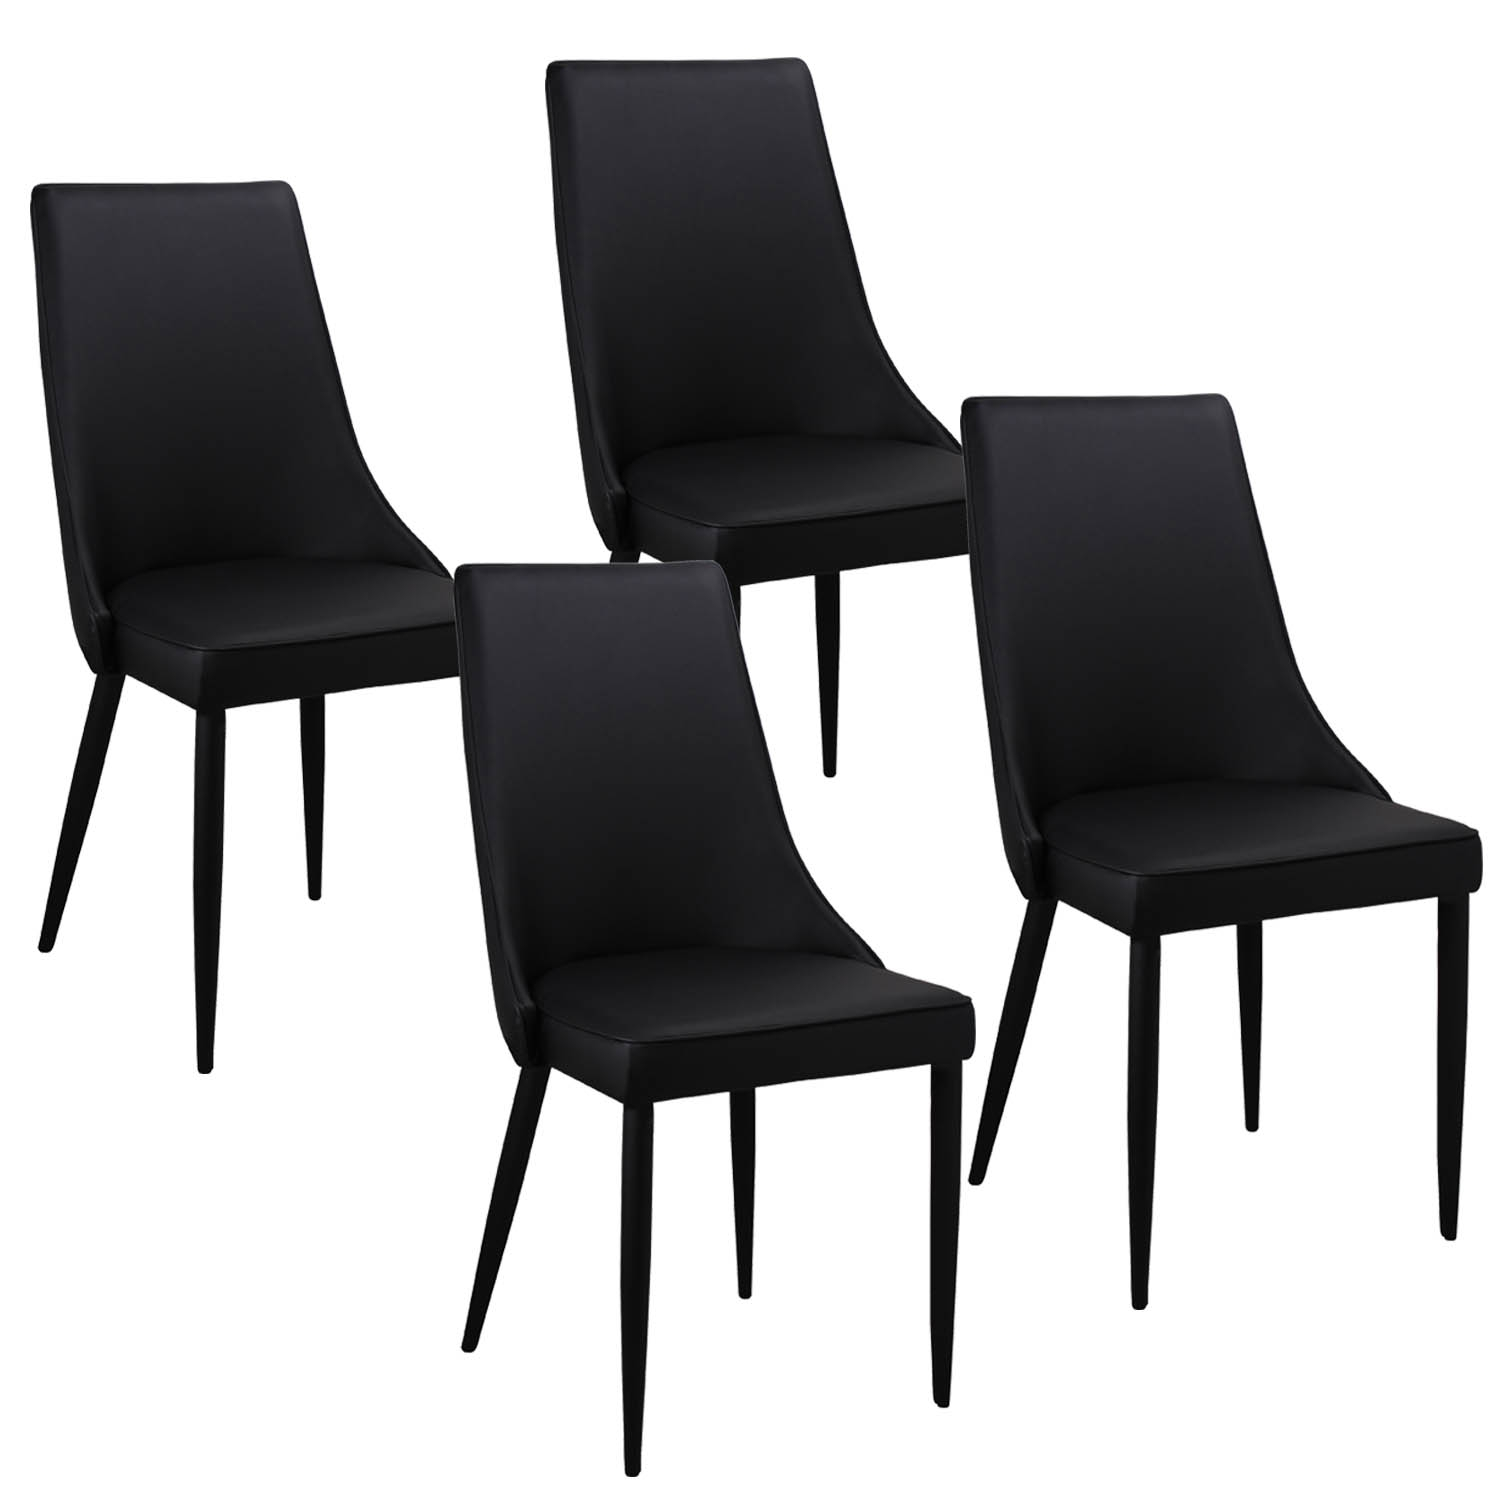 deco in paris lot de 4 chaises noir avev avev gris noir x4. Black Bedroom Furniture Sets. Home Design Ideas